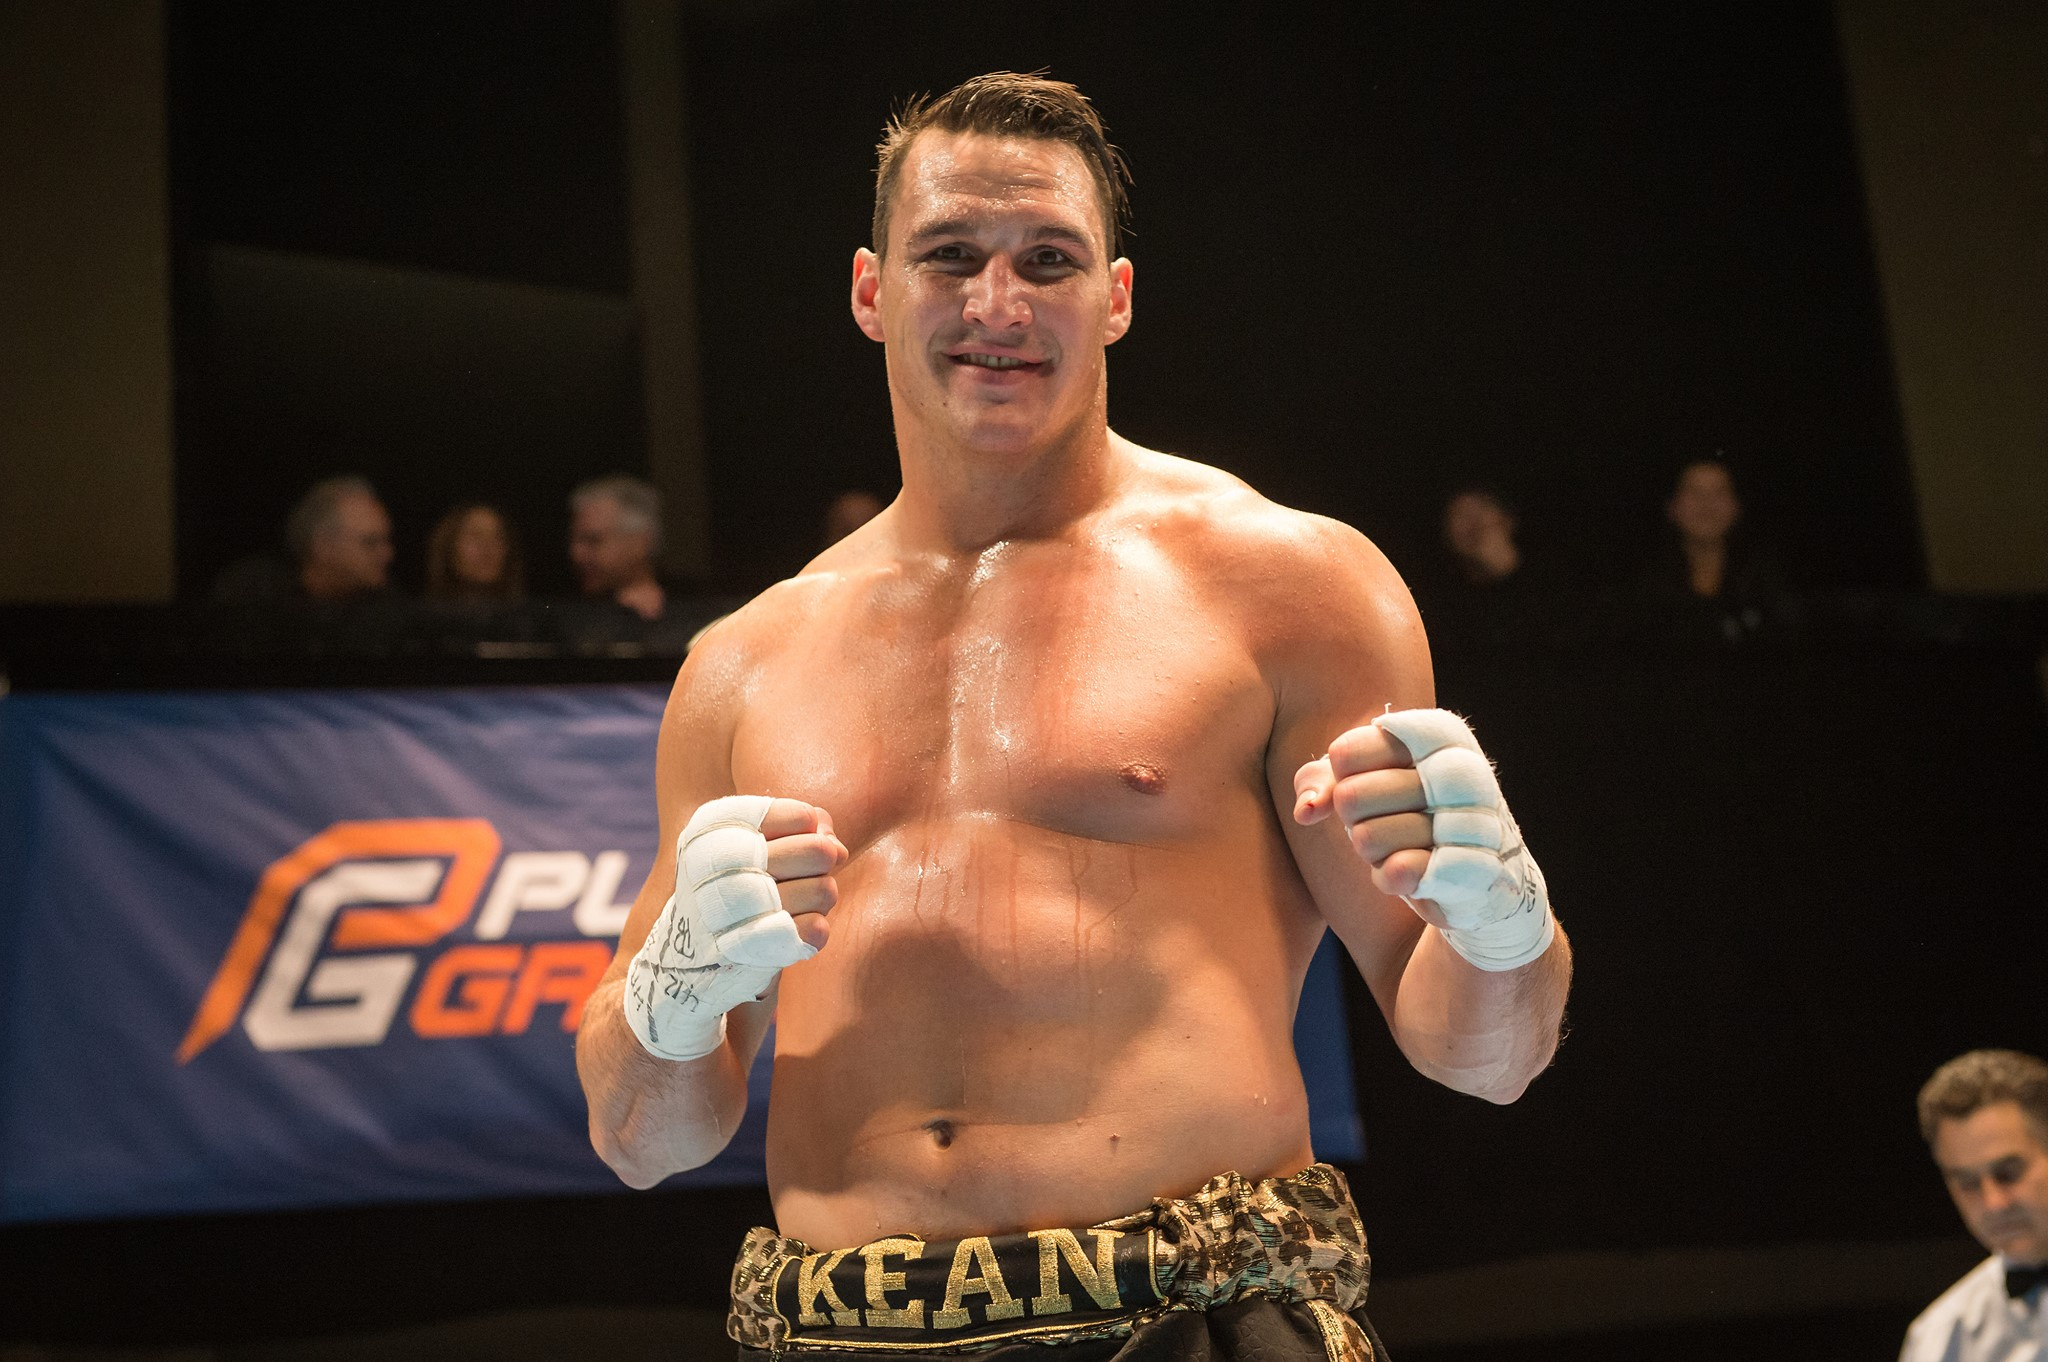 Simon Kean sur le ring